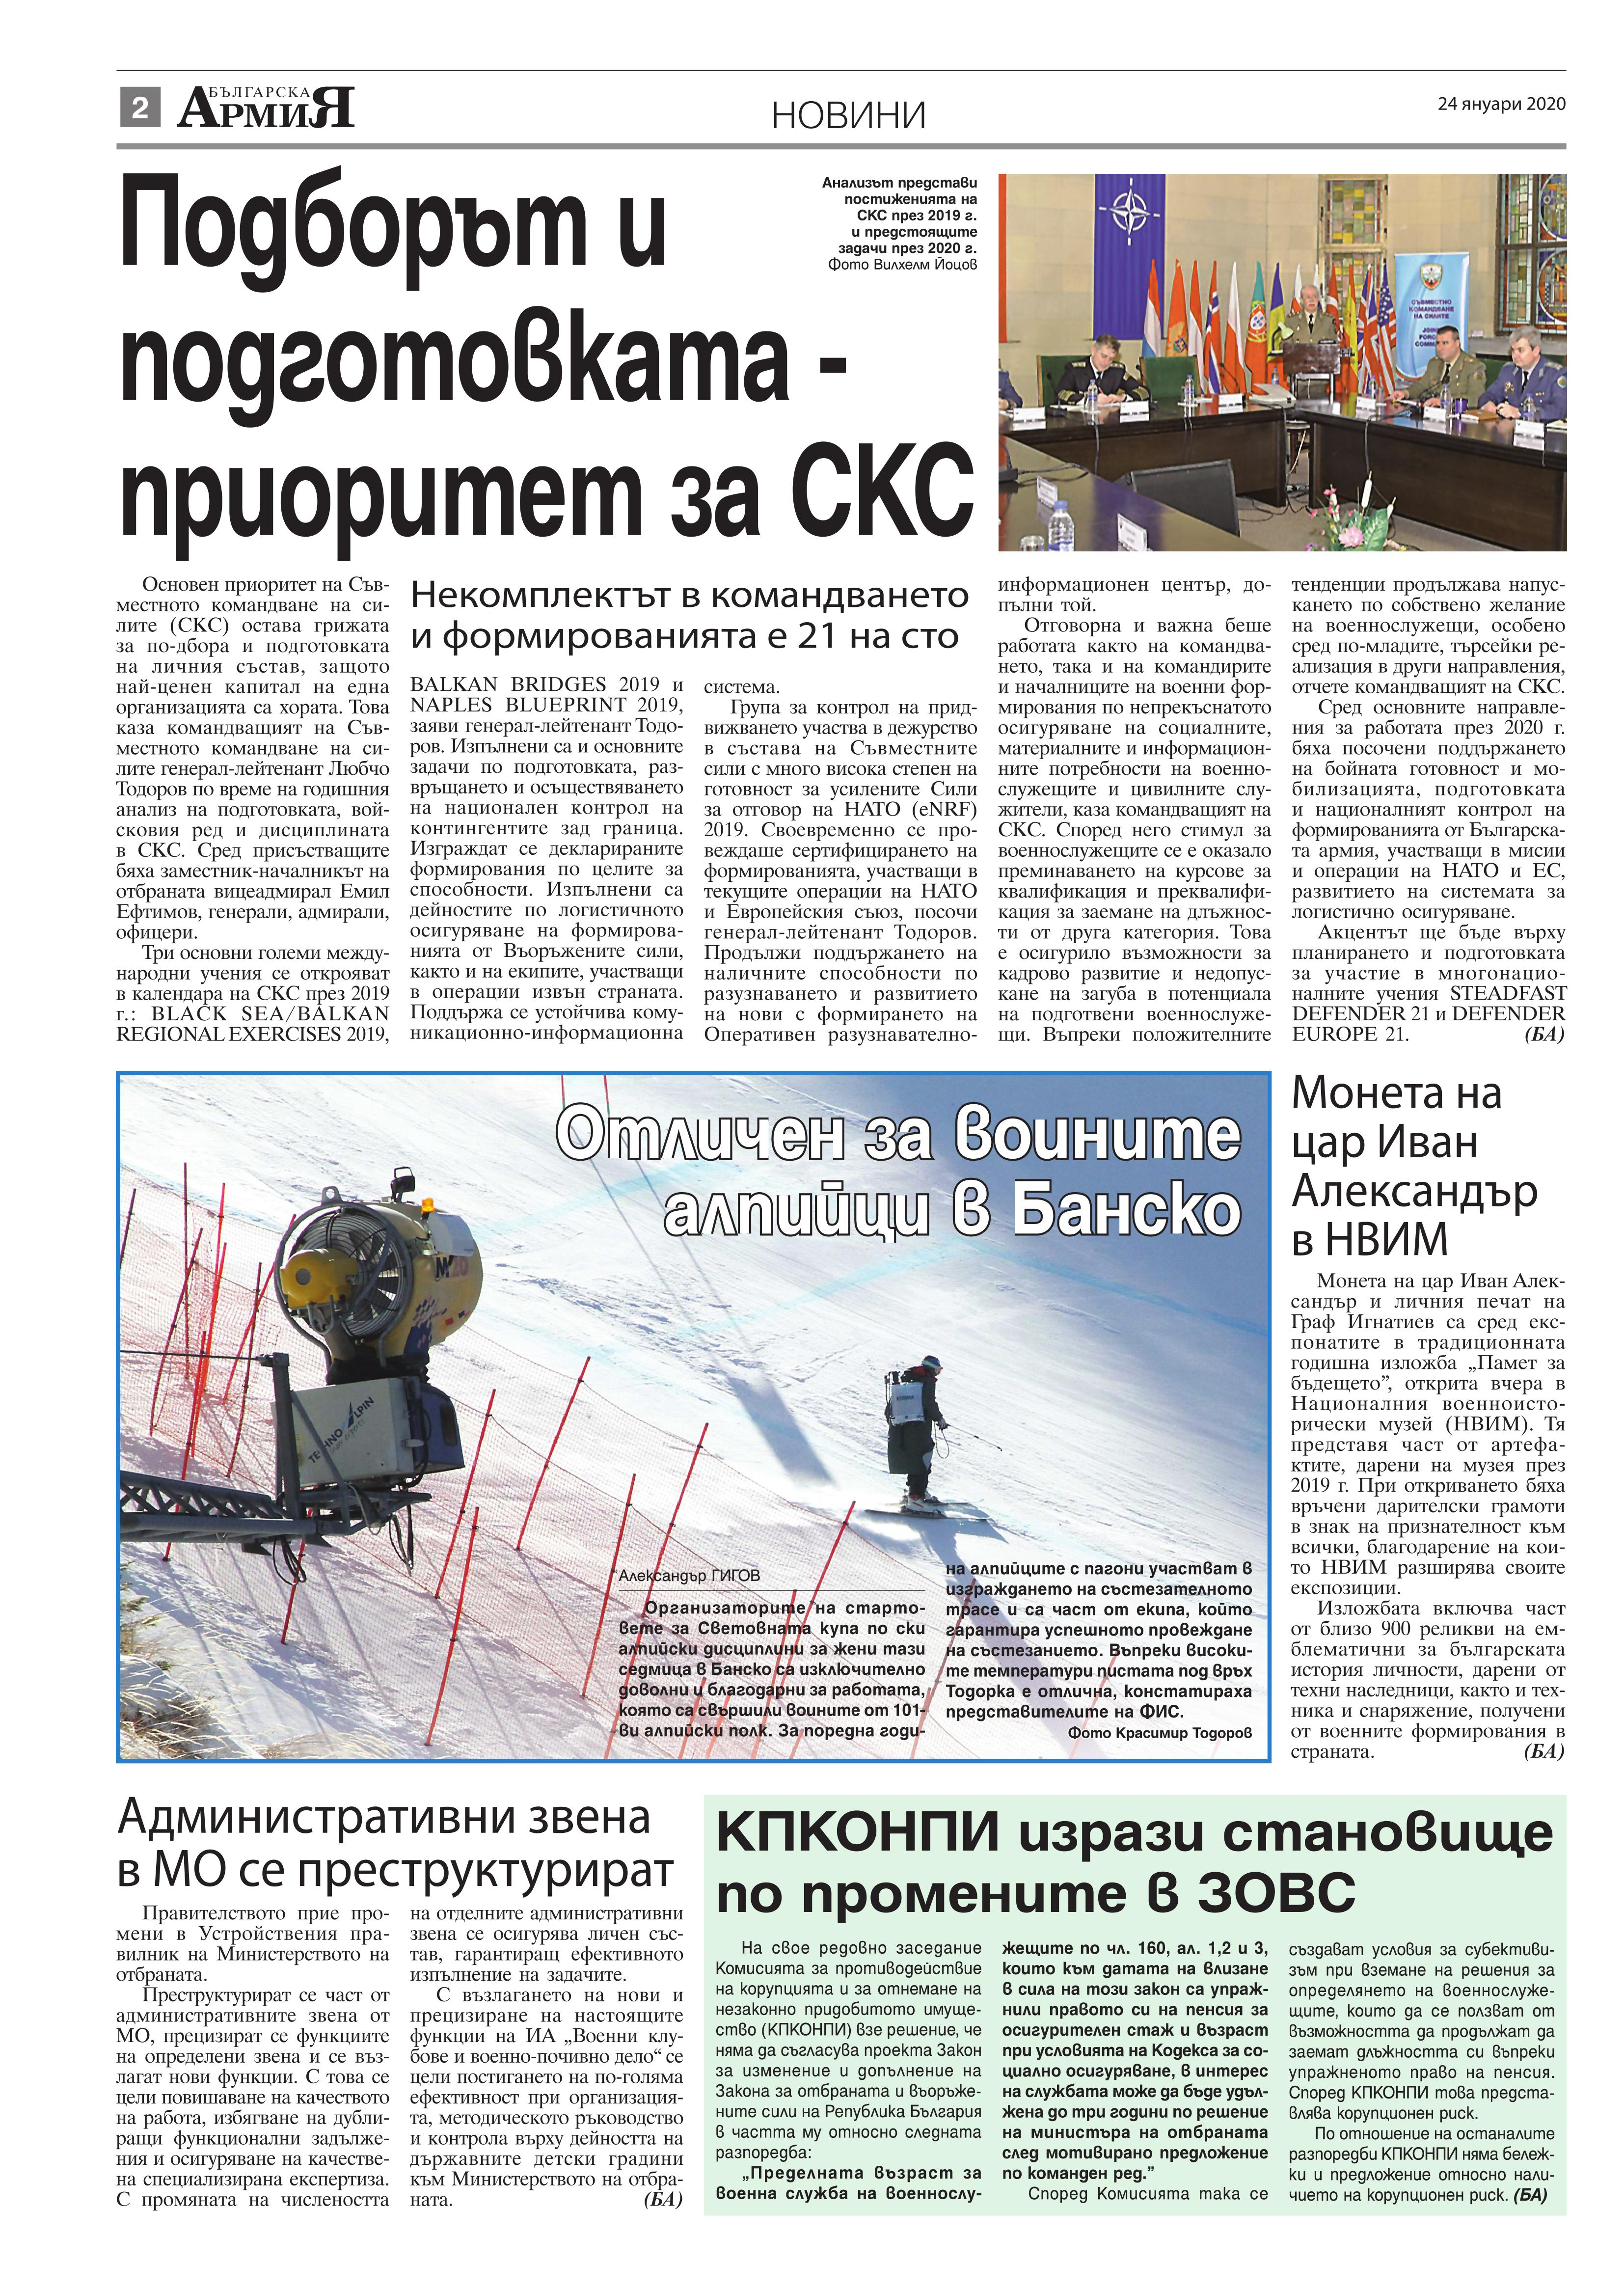 https://armymedia.bg/wp-content/uploads/2015/06/02.page1_-120.jpg